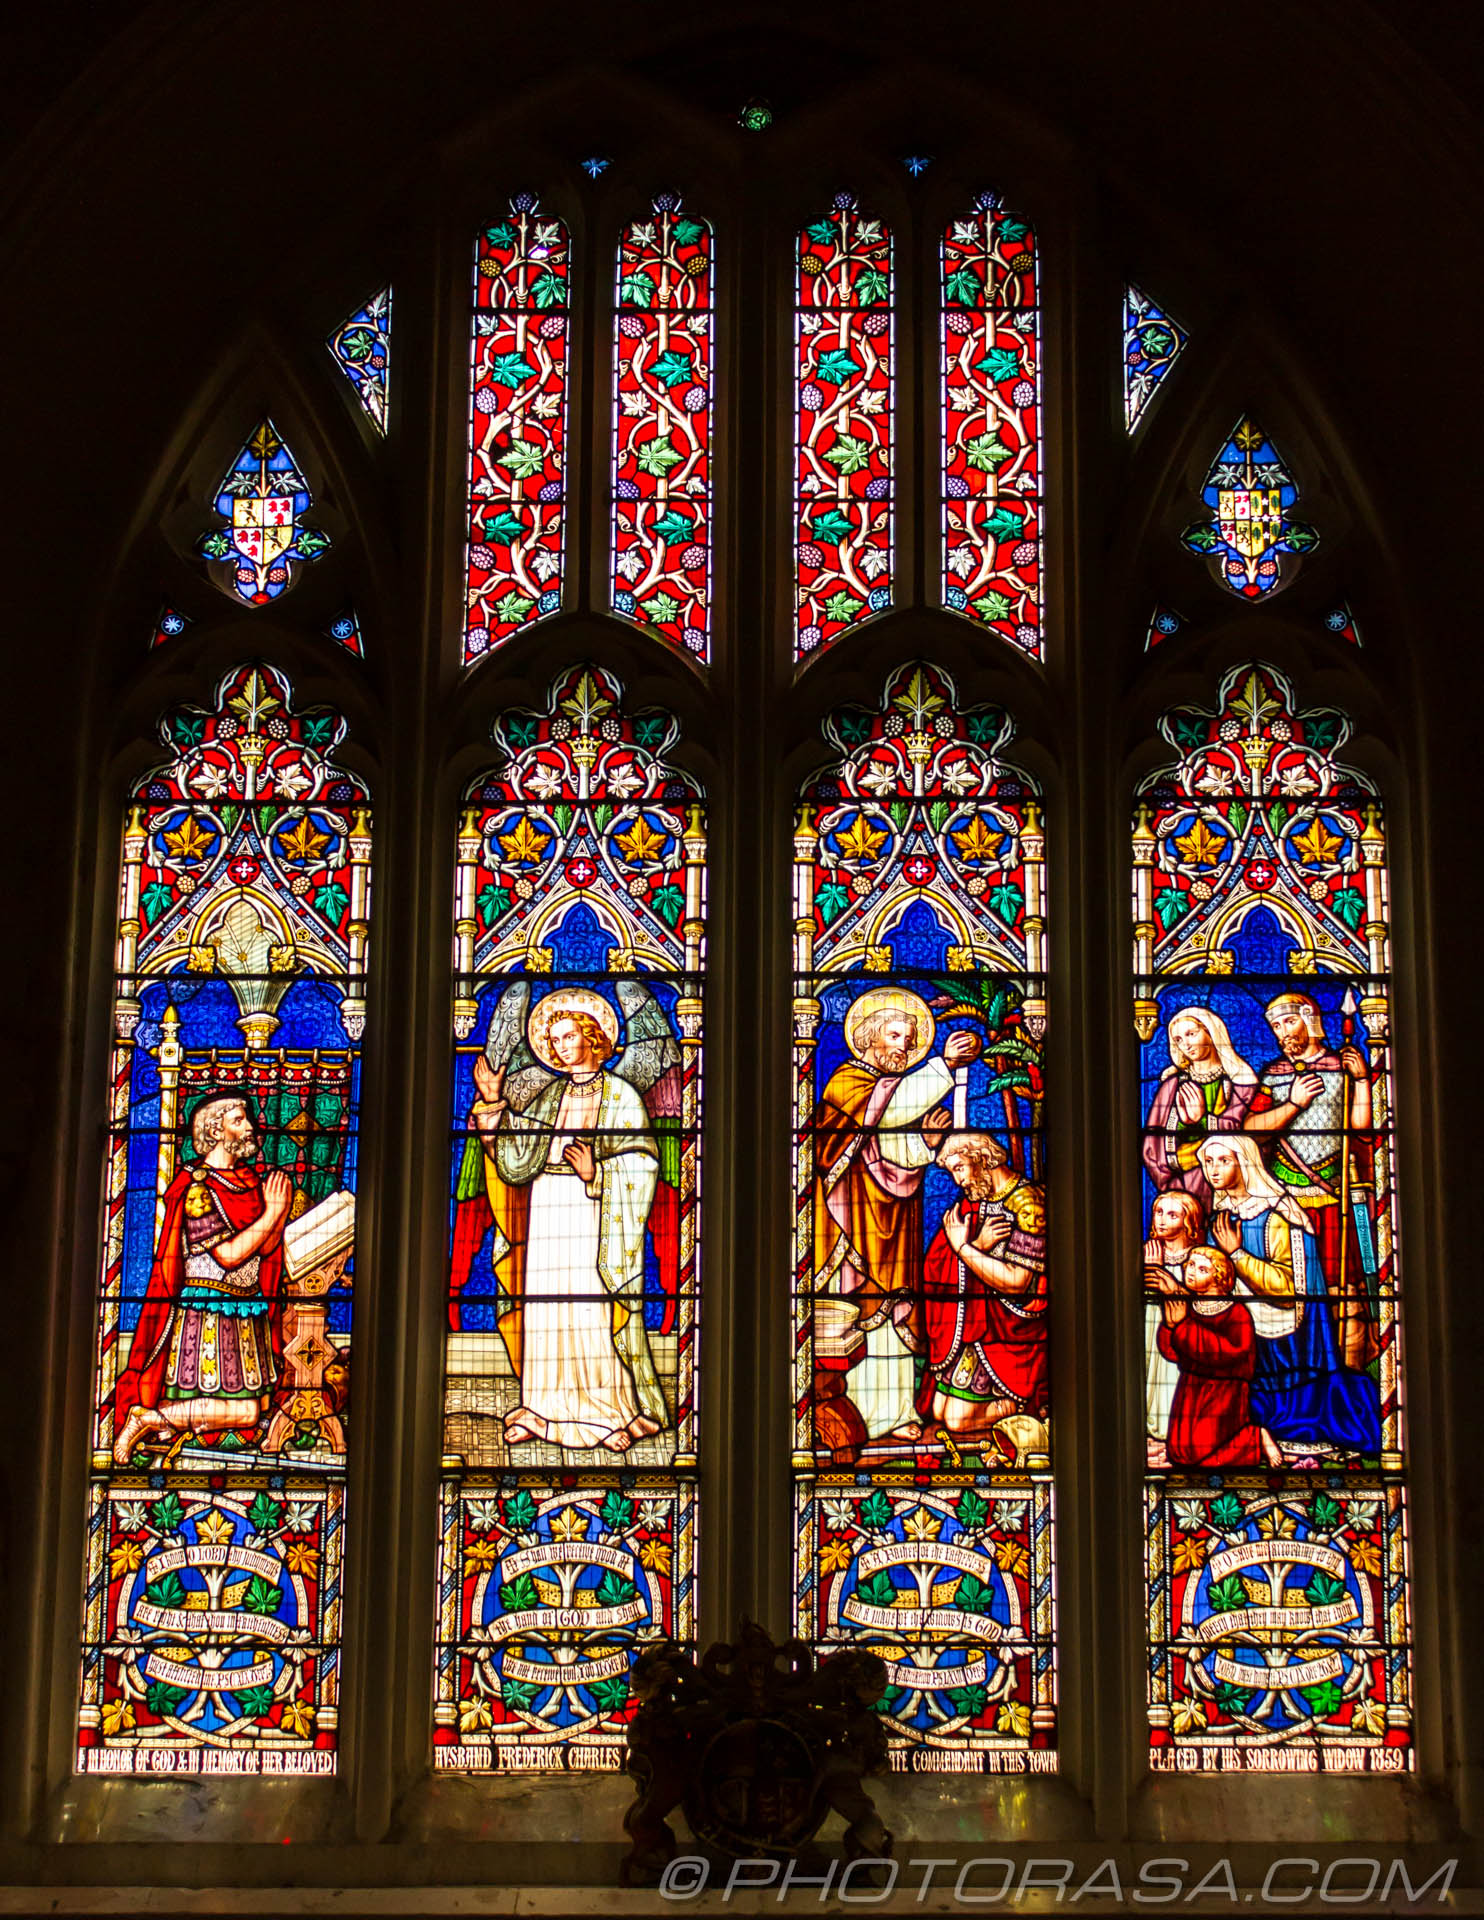 http://photorasa.com/inside-all-saints-church-in-maidstone/stained-glass-window-at-maidstone-all-saints/